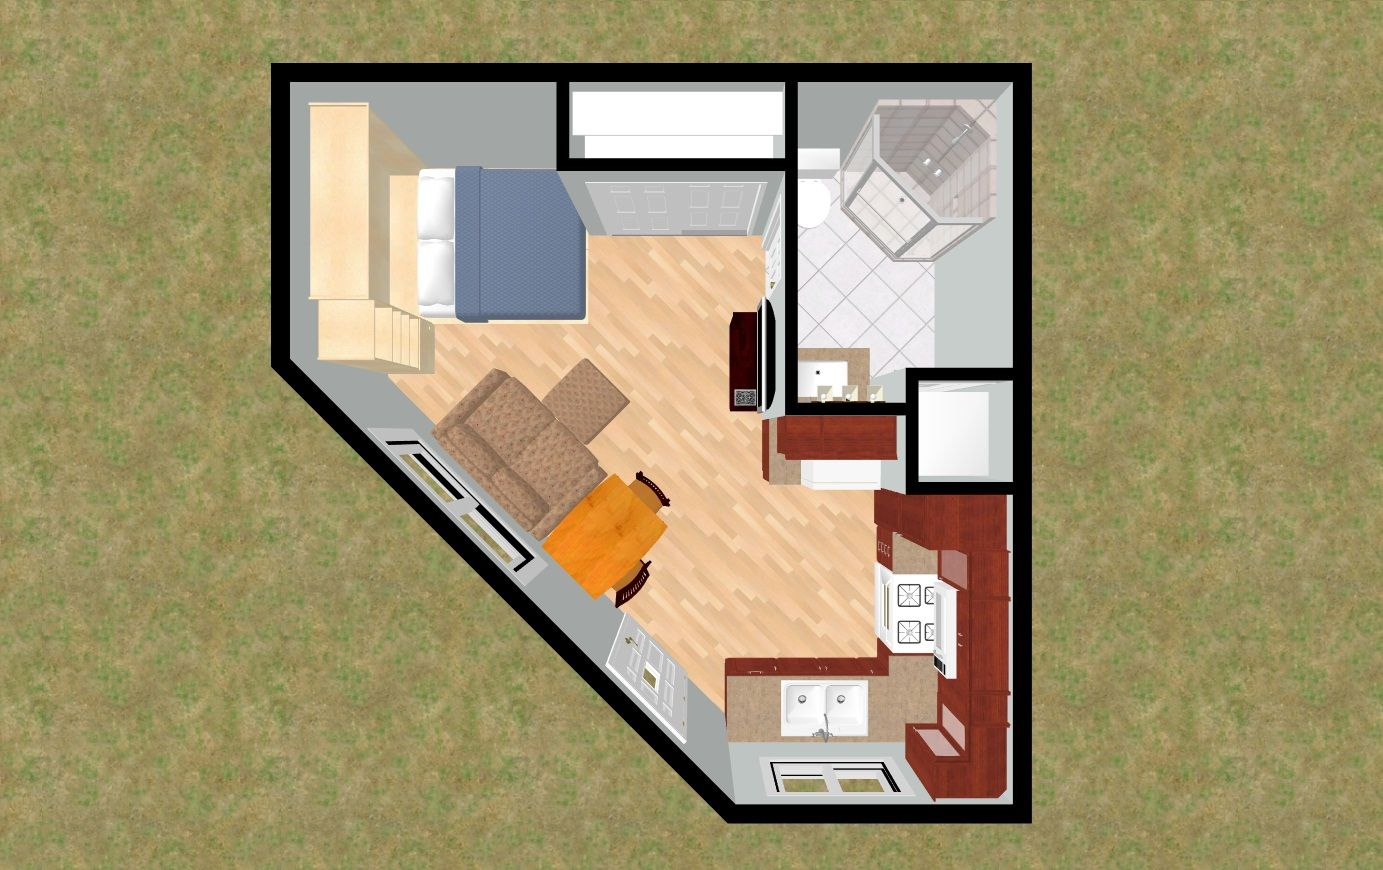 Small House Plans 750 Sq Ft Small Home Plans Under 200 Sq: 200 sqft office interior